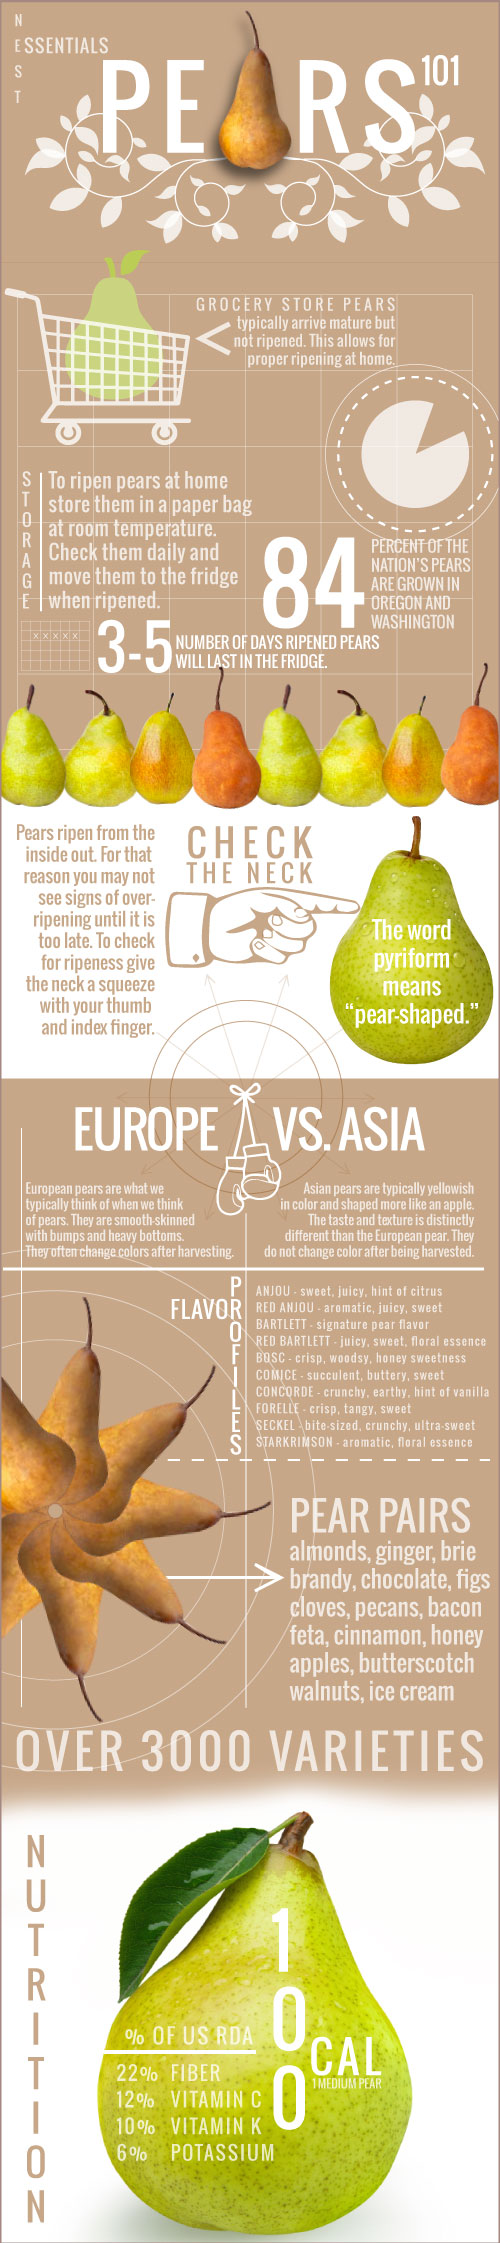 Pear infographic by Sam Henderson of Today's Nest